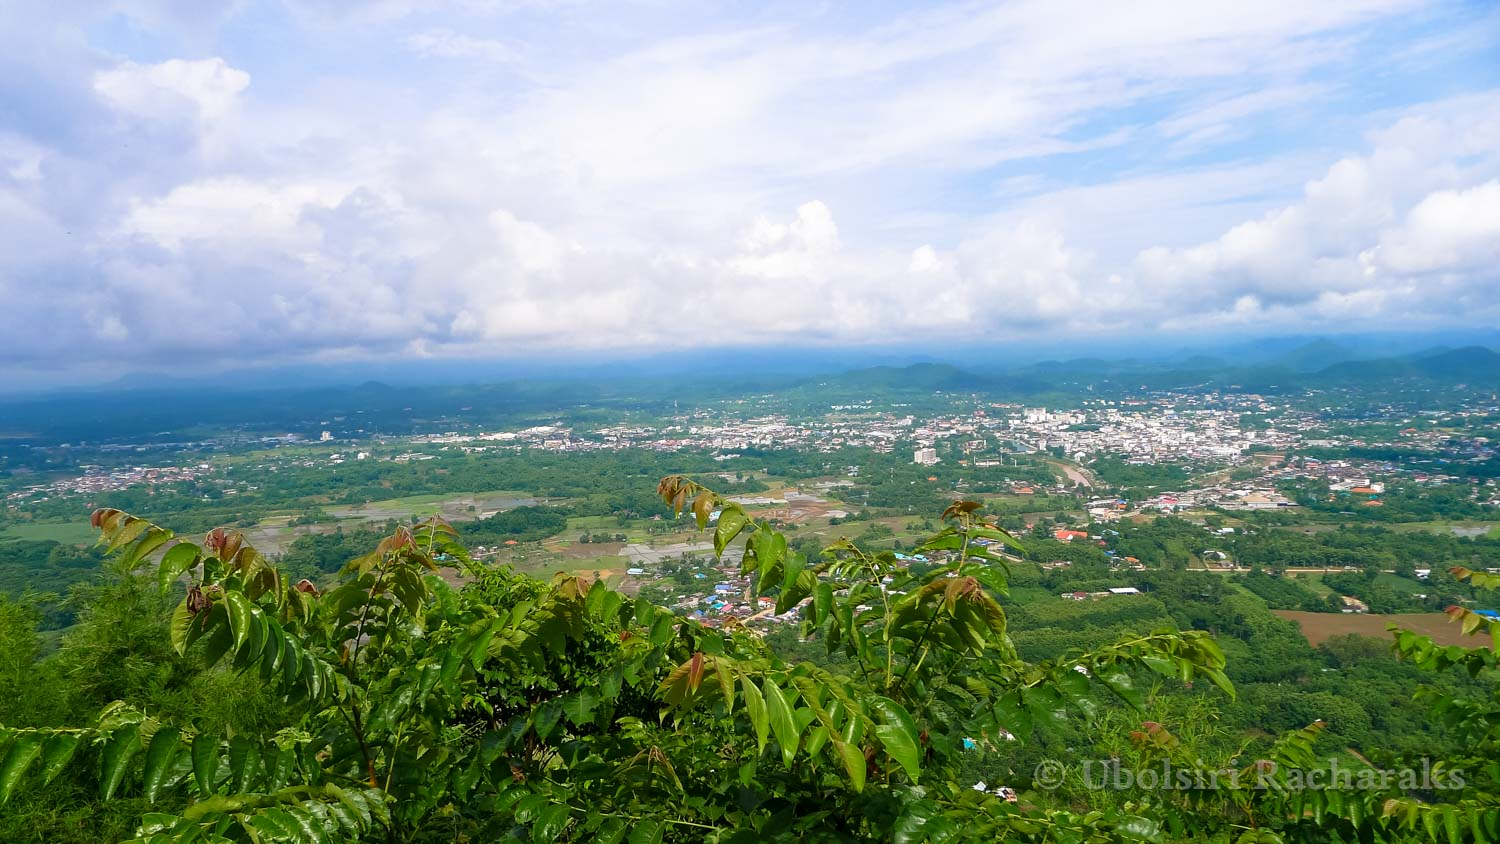 View from the top of Phu Bo Bit National Park